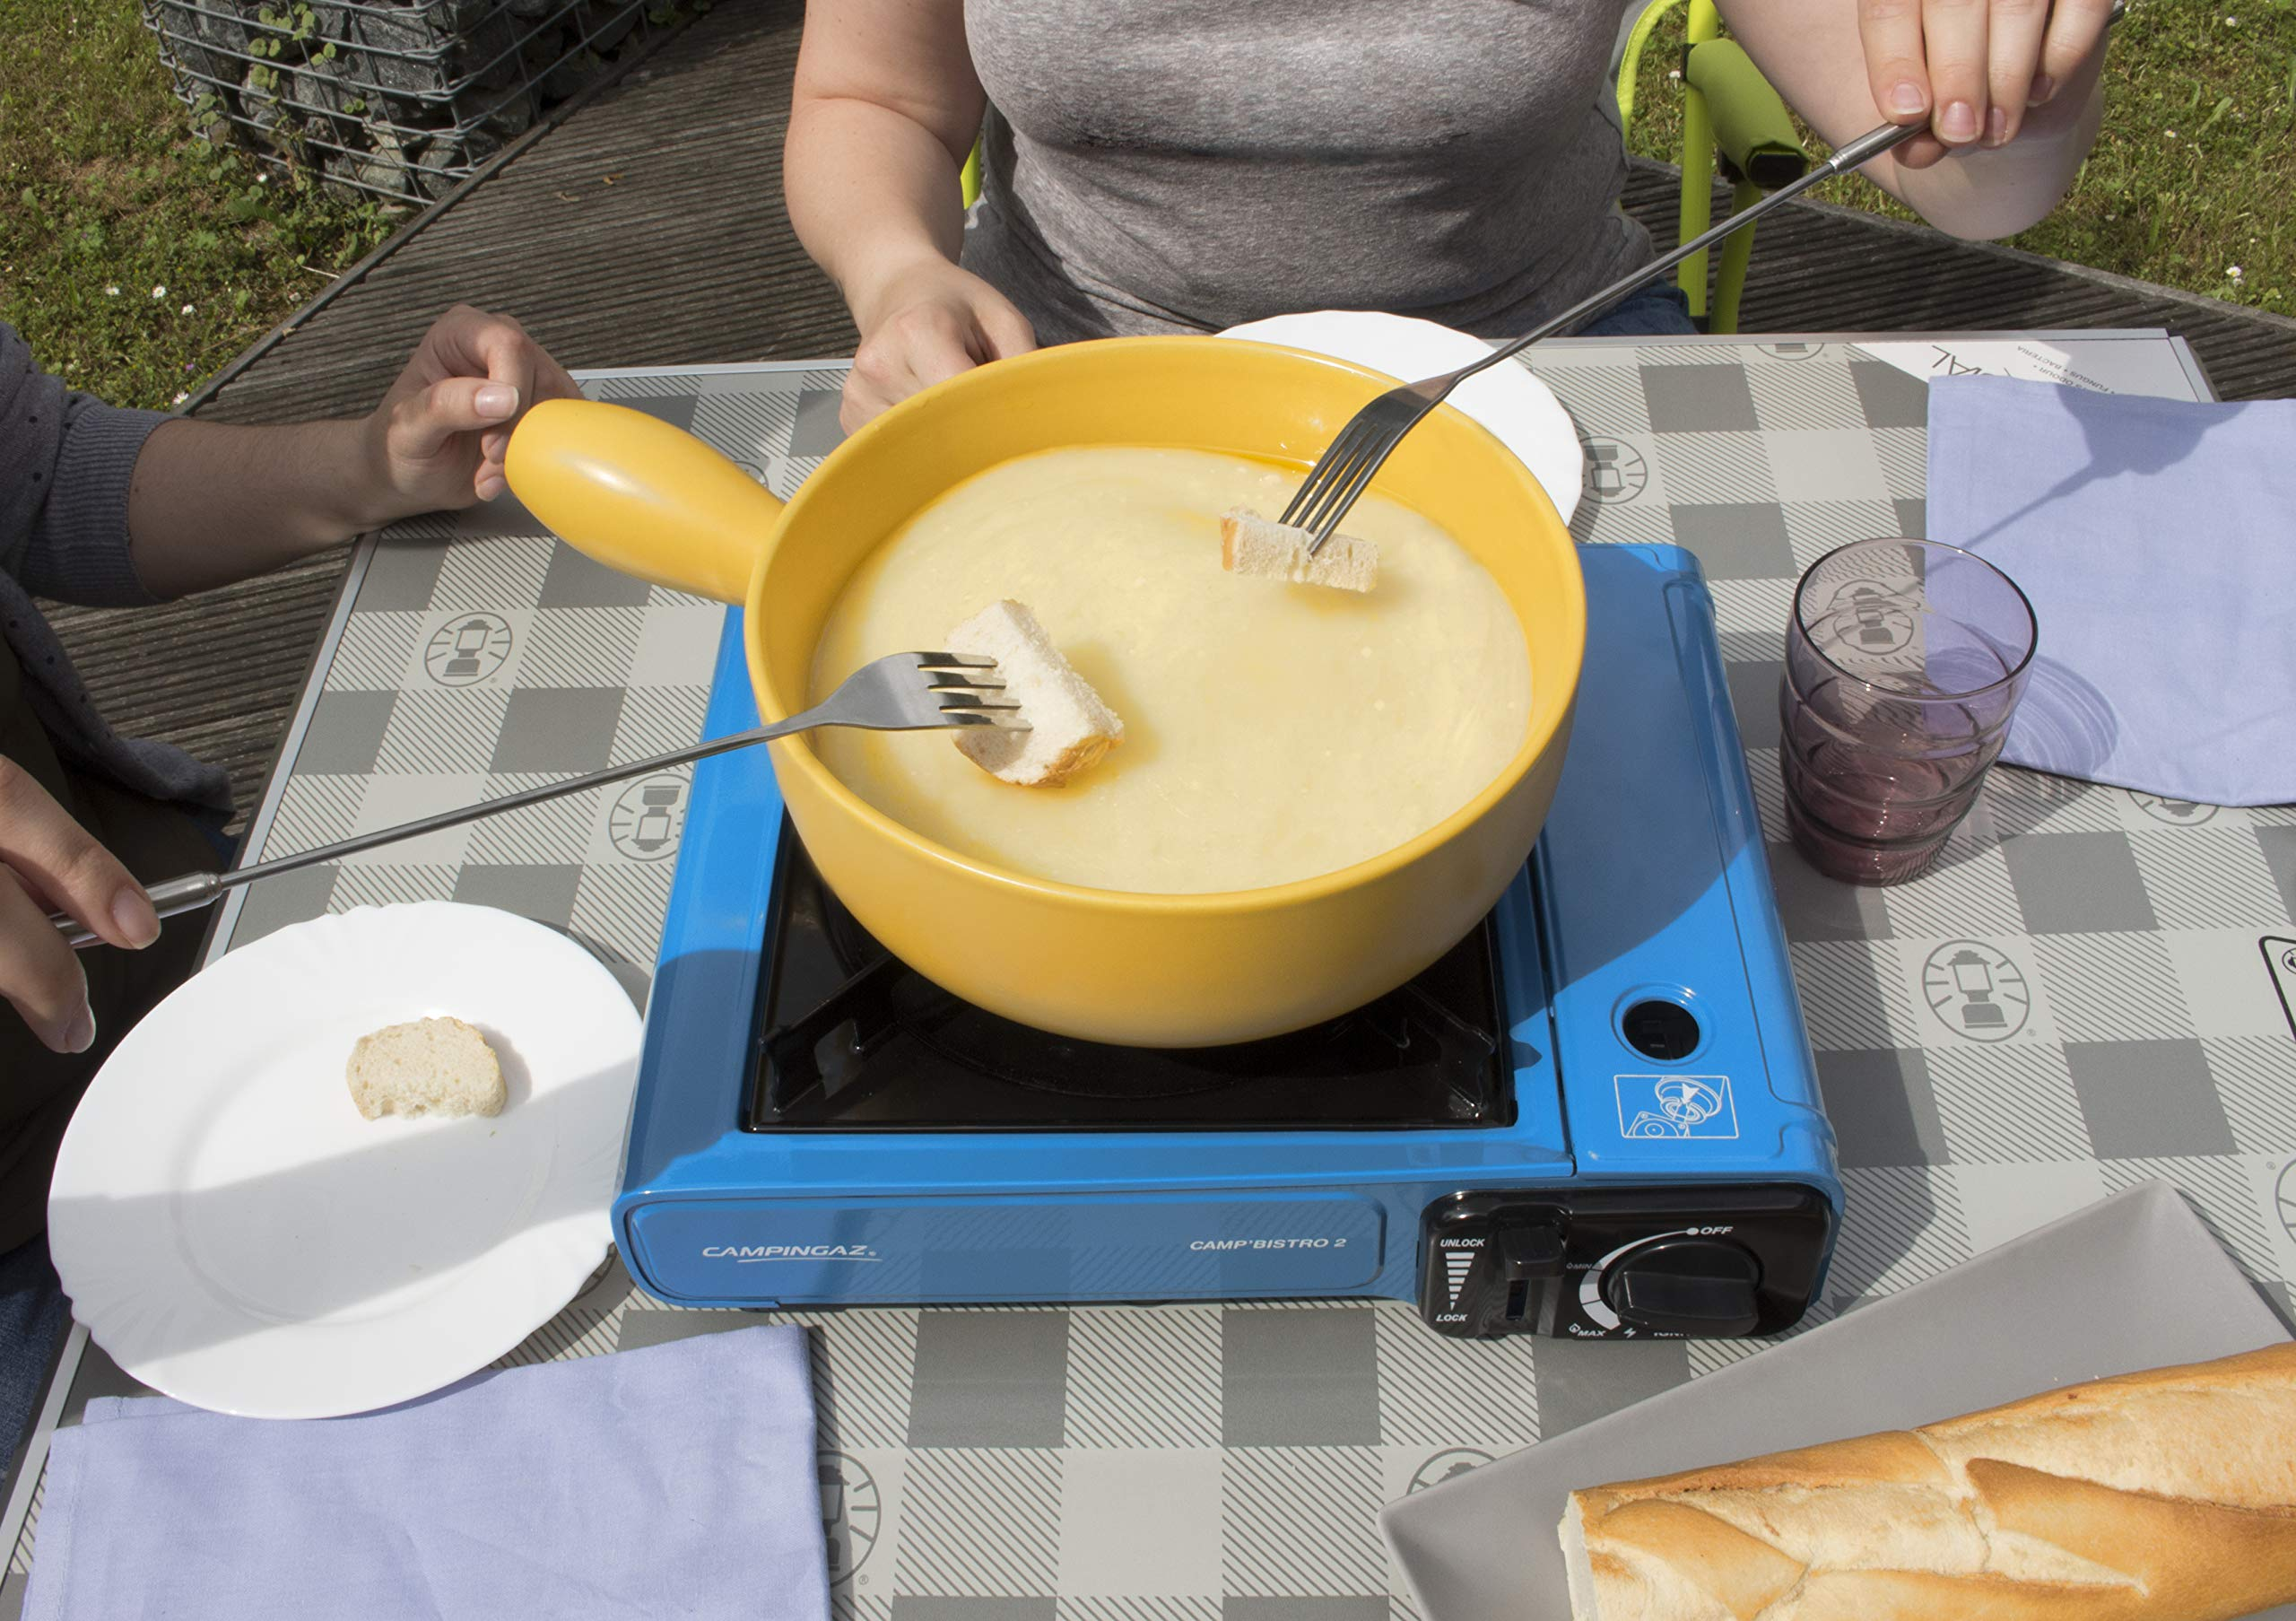 Campingaz Camp Bistro 2, Camping Stove, Portable Gas Cooker for Camping or Festivals, Easy Handling 5